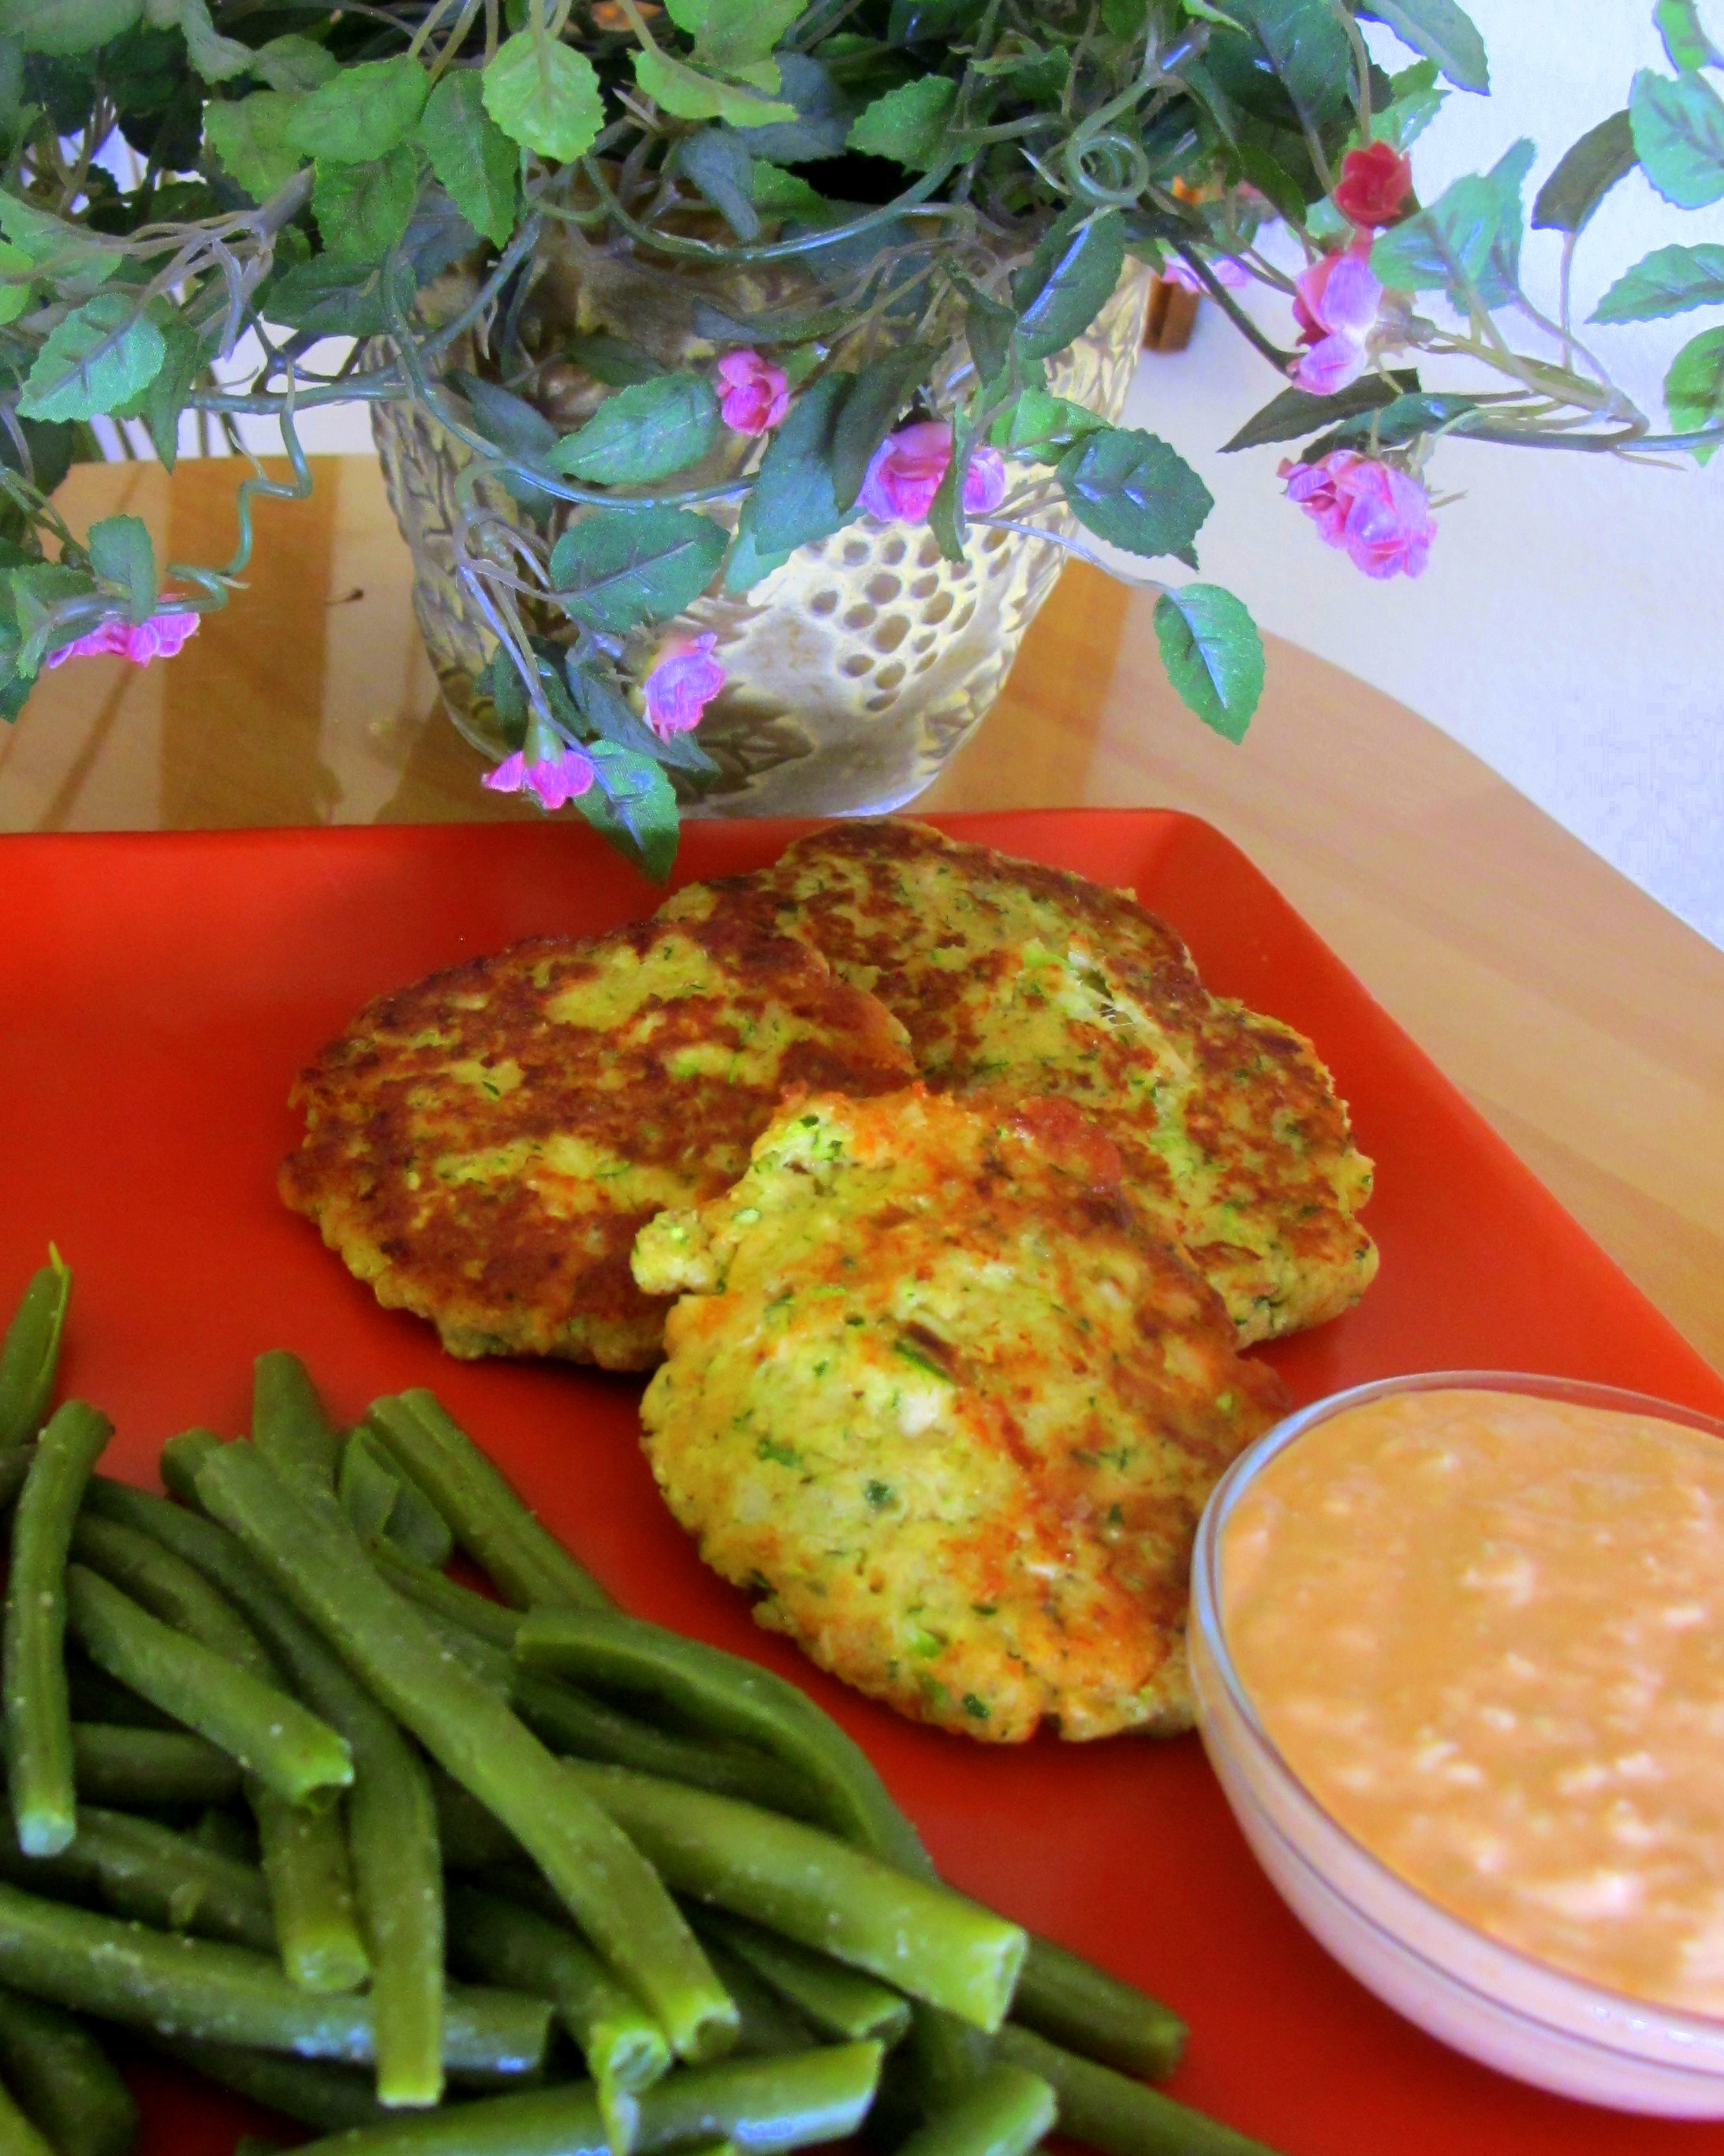 ... Zucchini/Tuna Cakes with Zesty Remoulade | Susartandfood's Blog